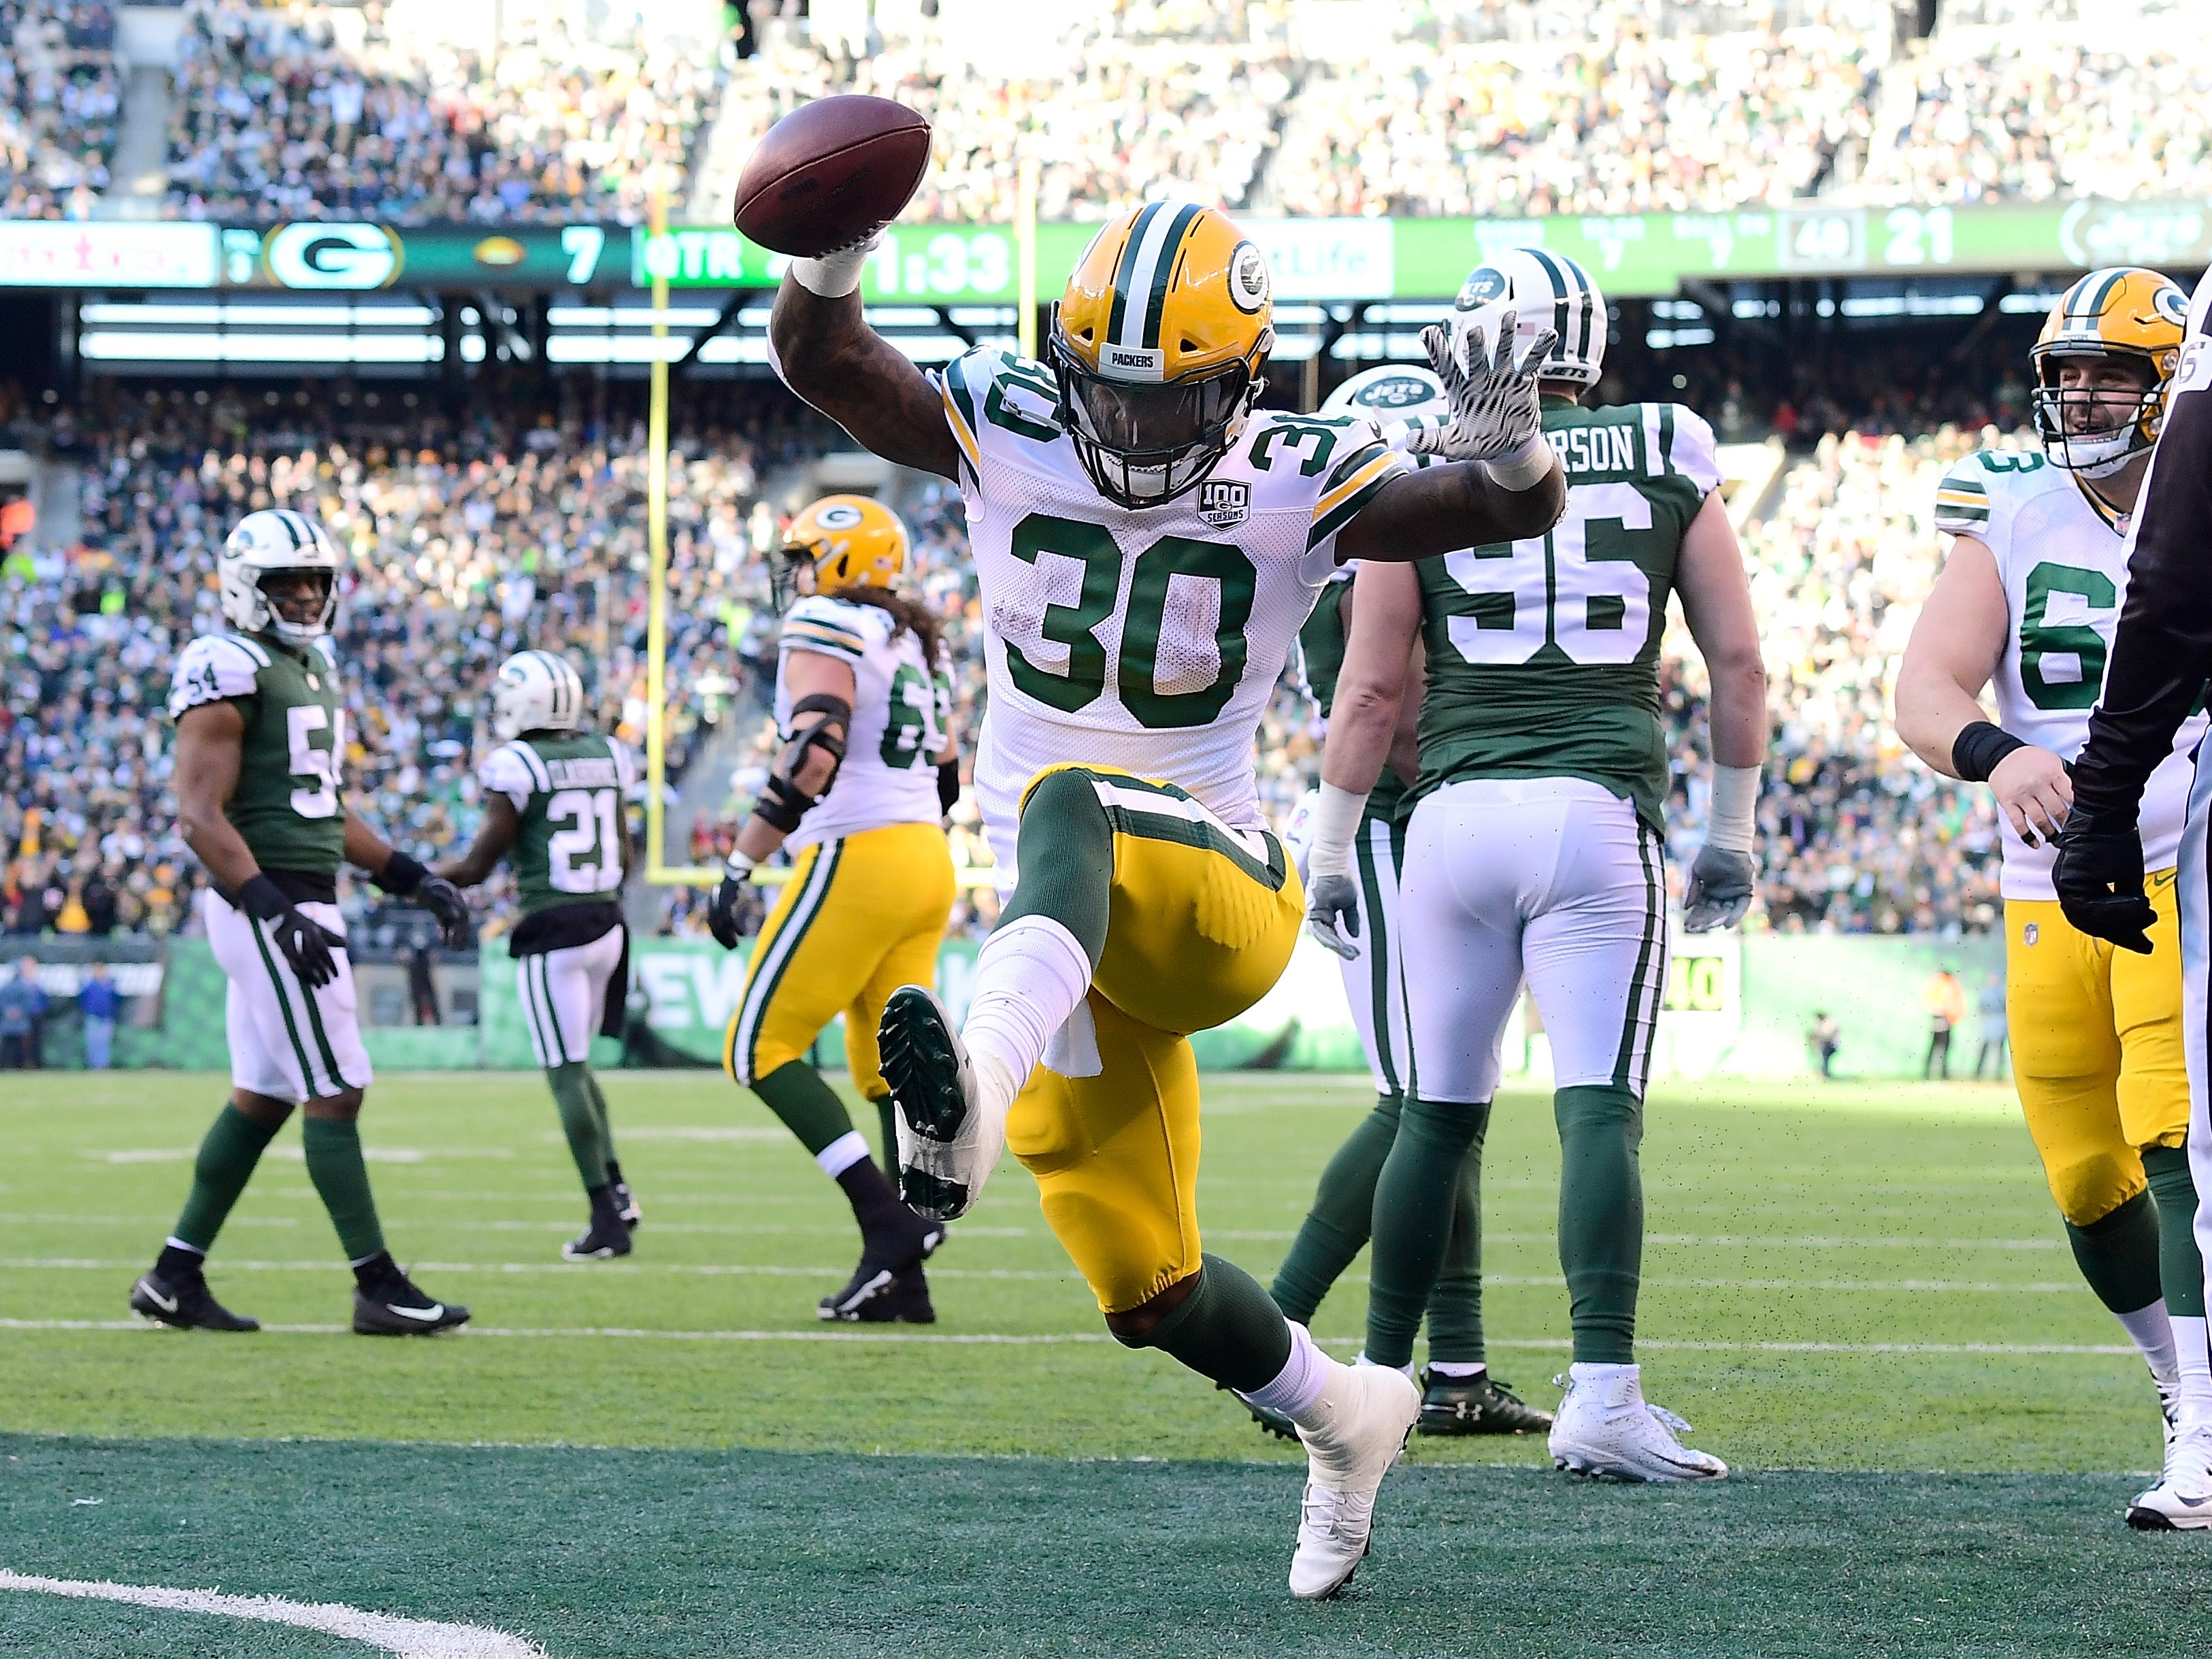 Jamaal Williams of the Green Bay Packers celebrates after scoring a touchdown against the New York Jets during the second quarter at MetLife Stadium on December 23, 2018 in East Rutherford, New Jersey.  (Photo by Steven Ryan/Getty Images)